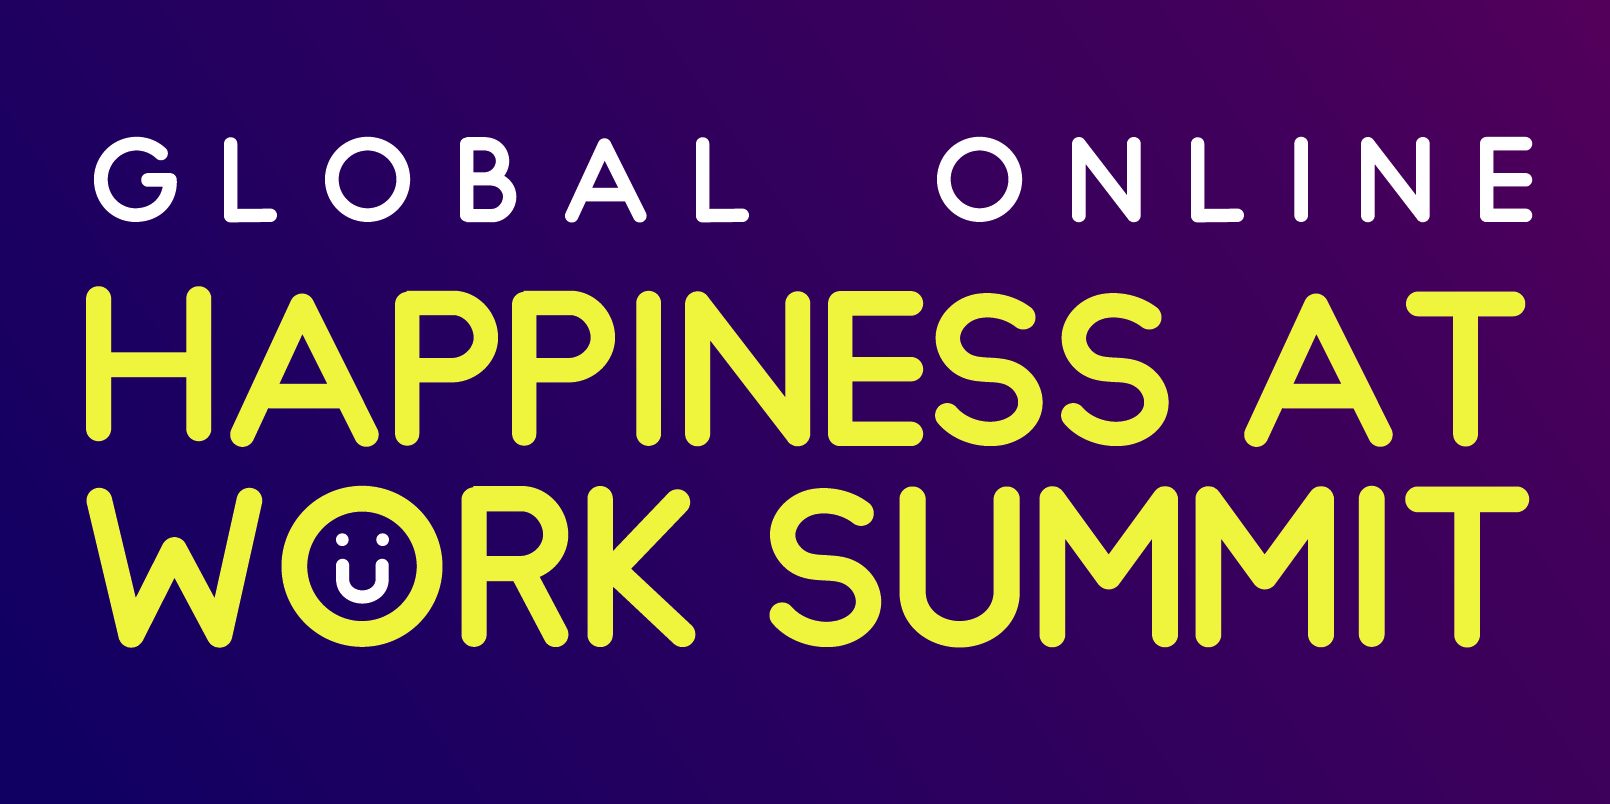 Inschrijving Global Online Happines at Work summit geopend